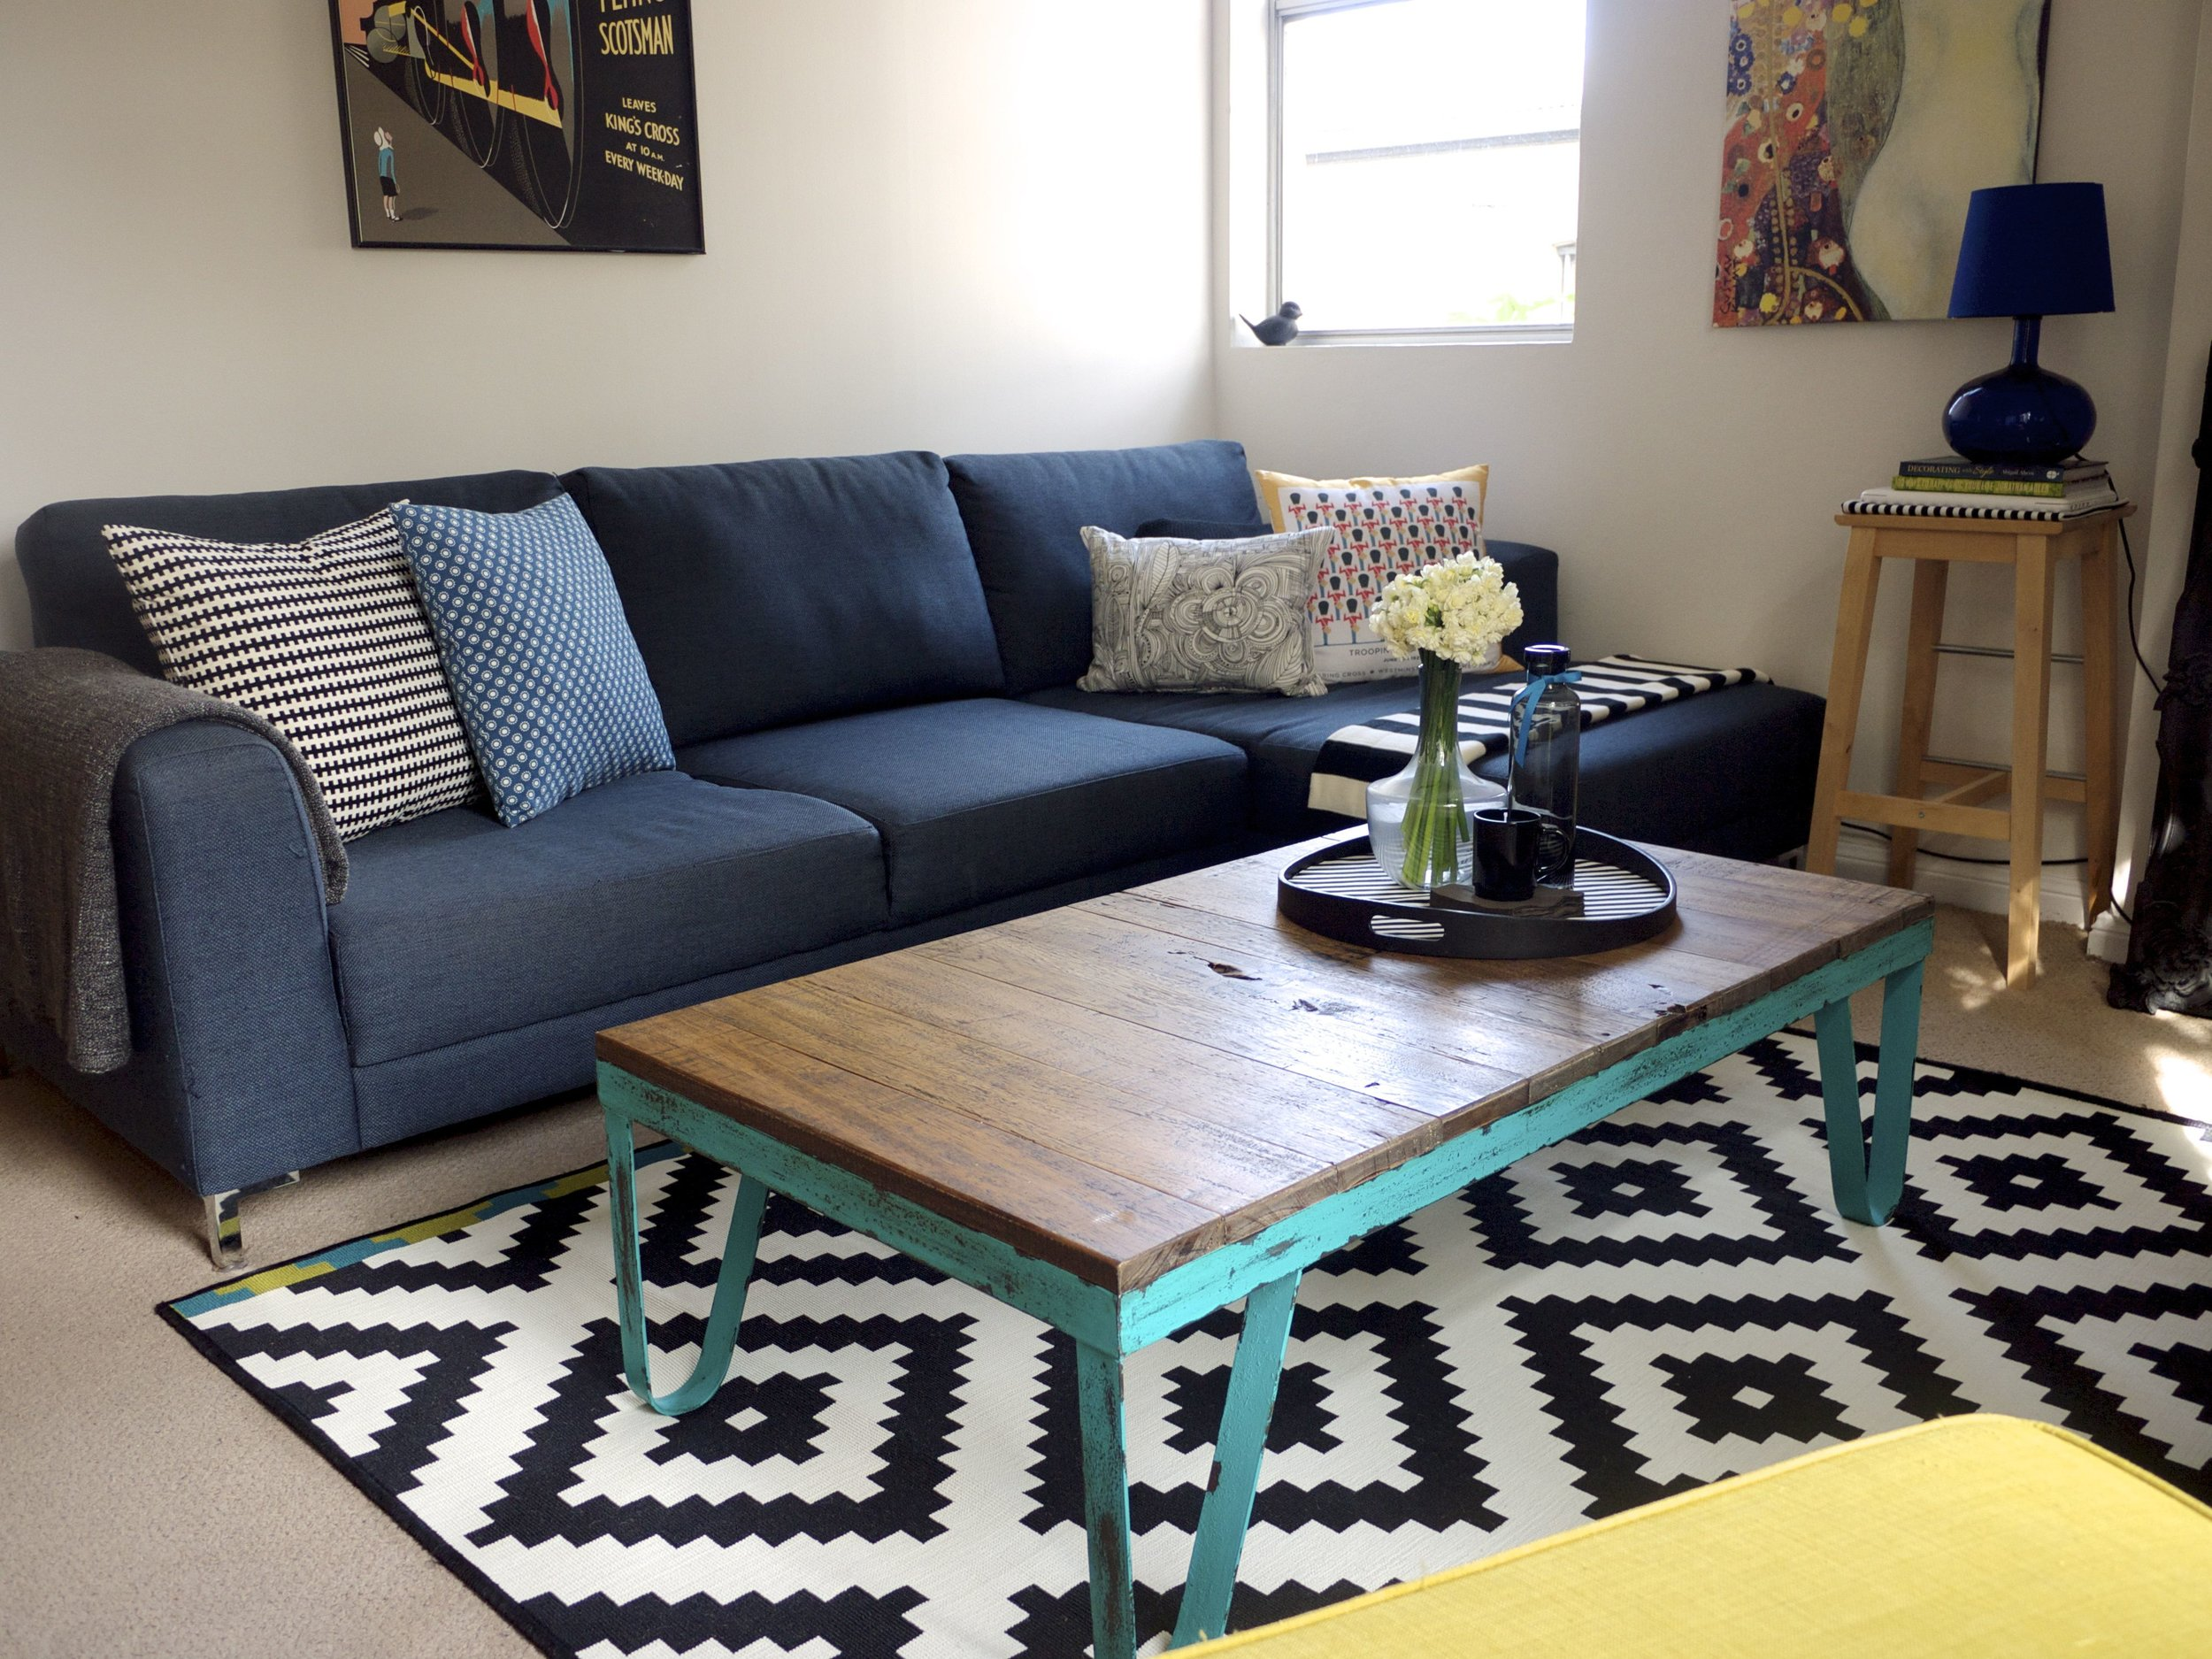 10 Ikea Steals That Will Make Your Home Look Like An Airbnb Rental Without Having It Rented Shop The Look Urban Sales